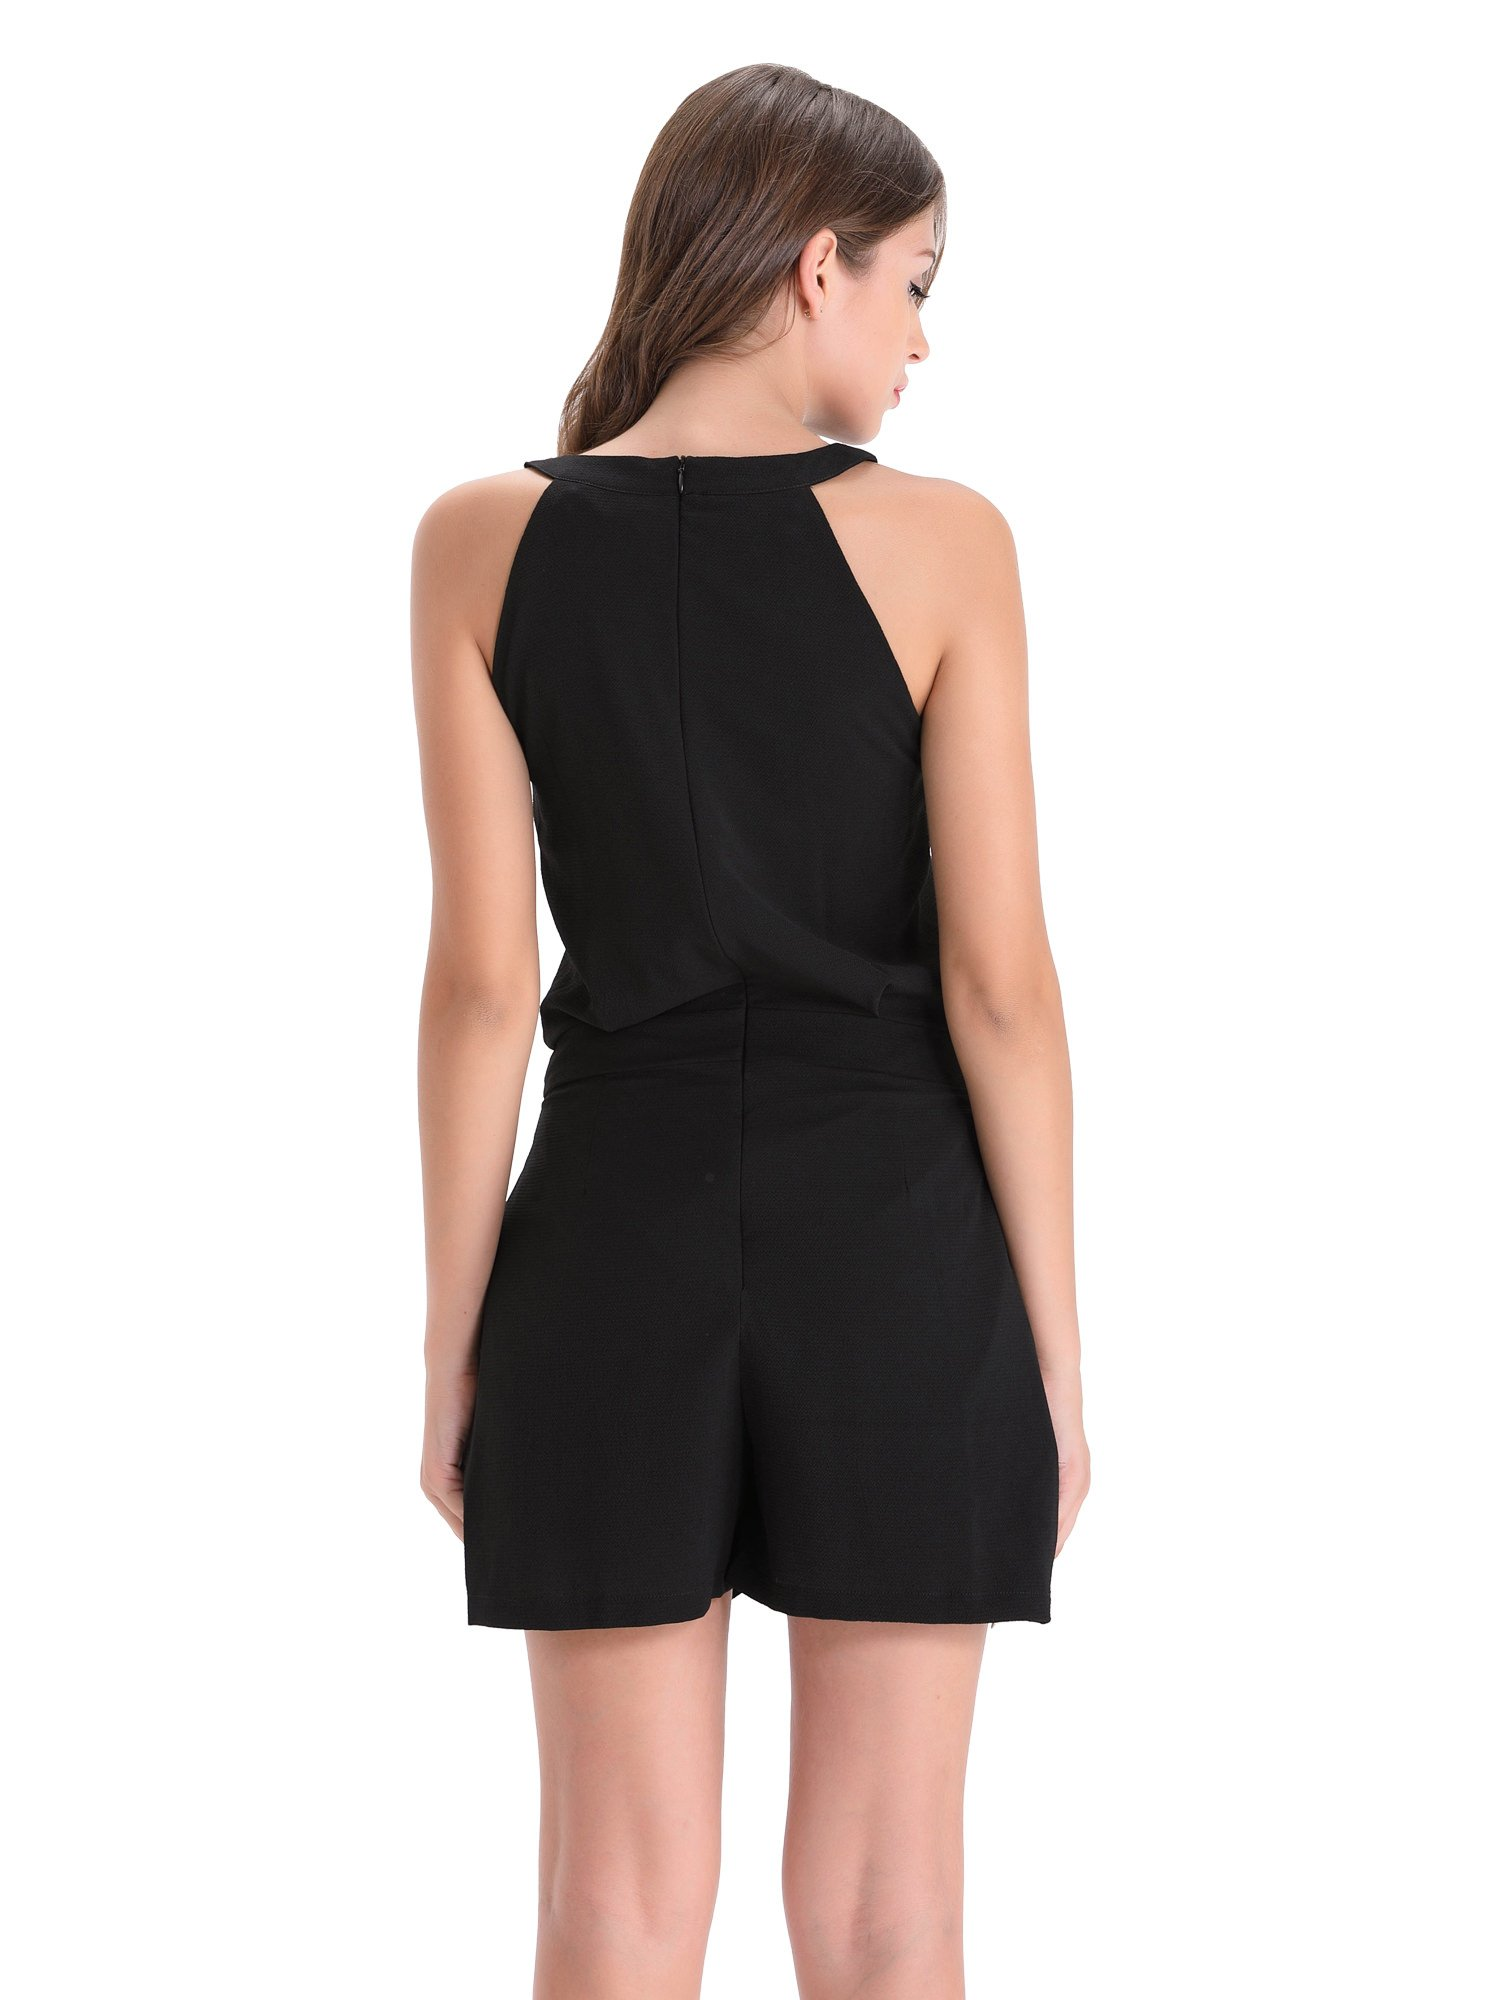 BARGOOS Women All-Black Cut Out Halter Neck Rompers Sleeveless Playsuit Summer Casual High Waist Mini Jumpsuits by BARGOOS (Image #3)